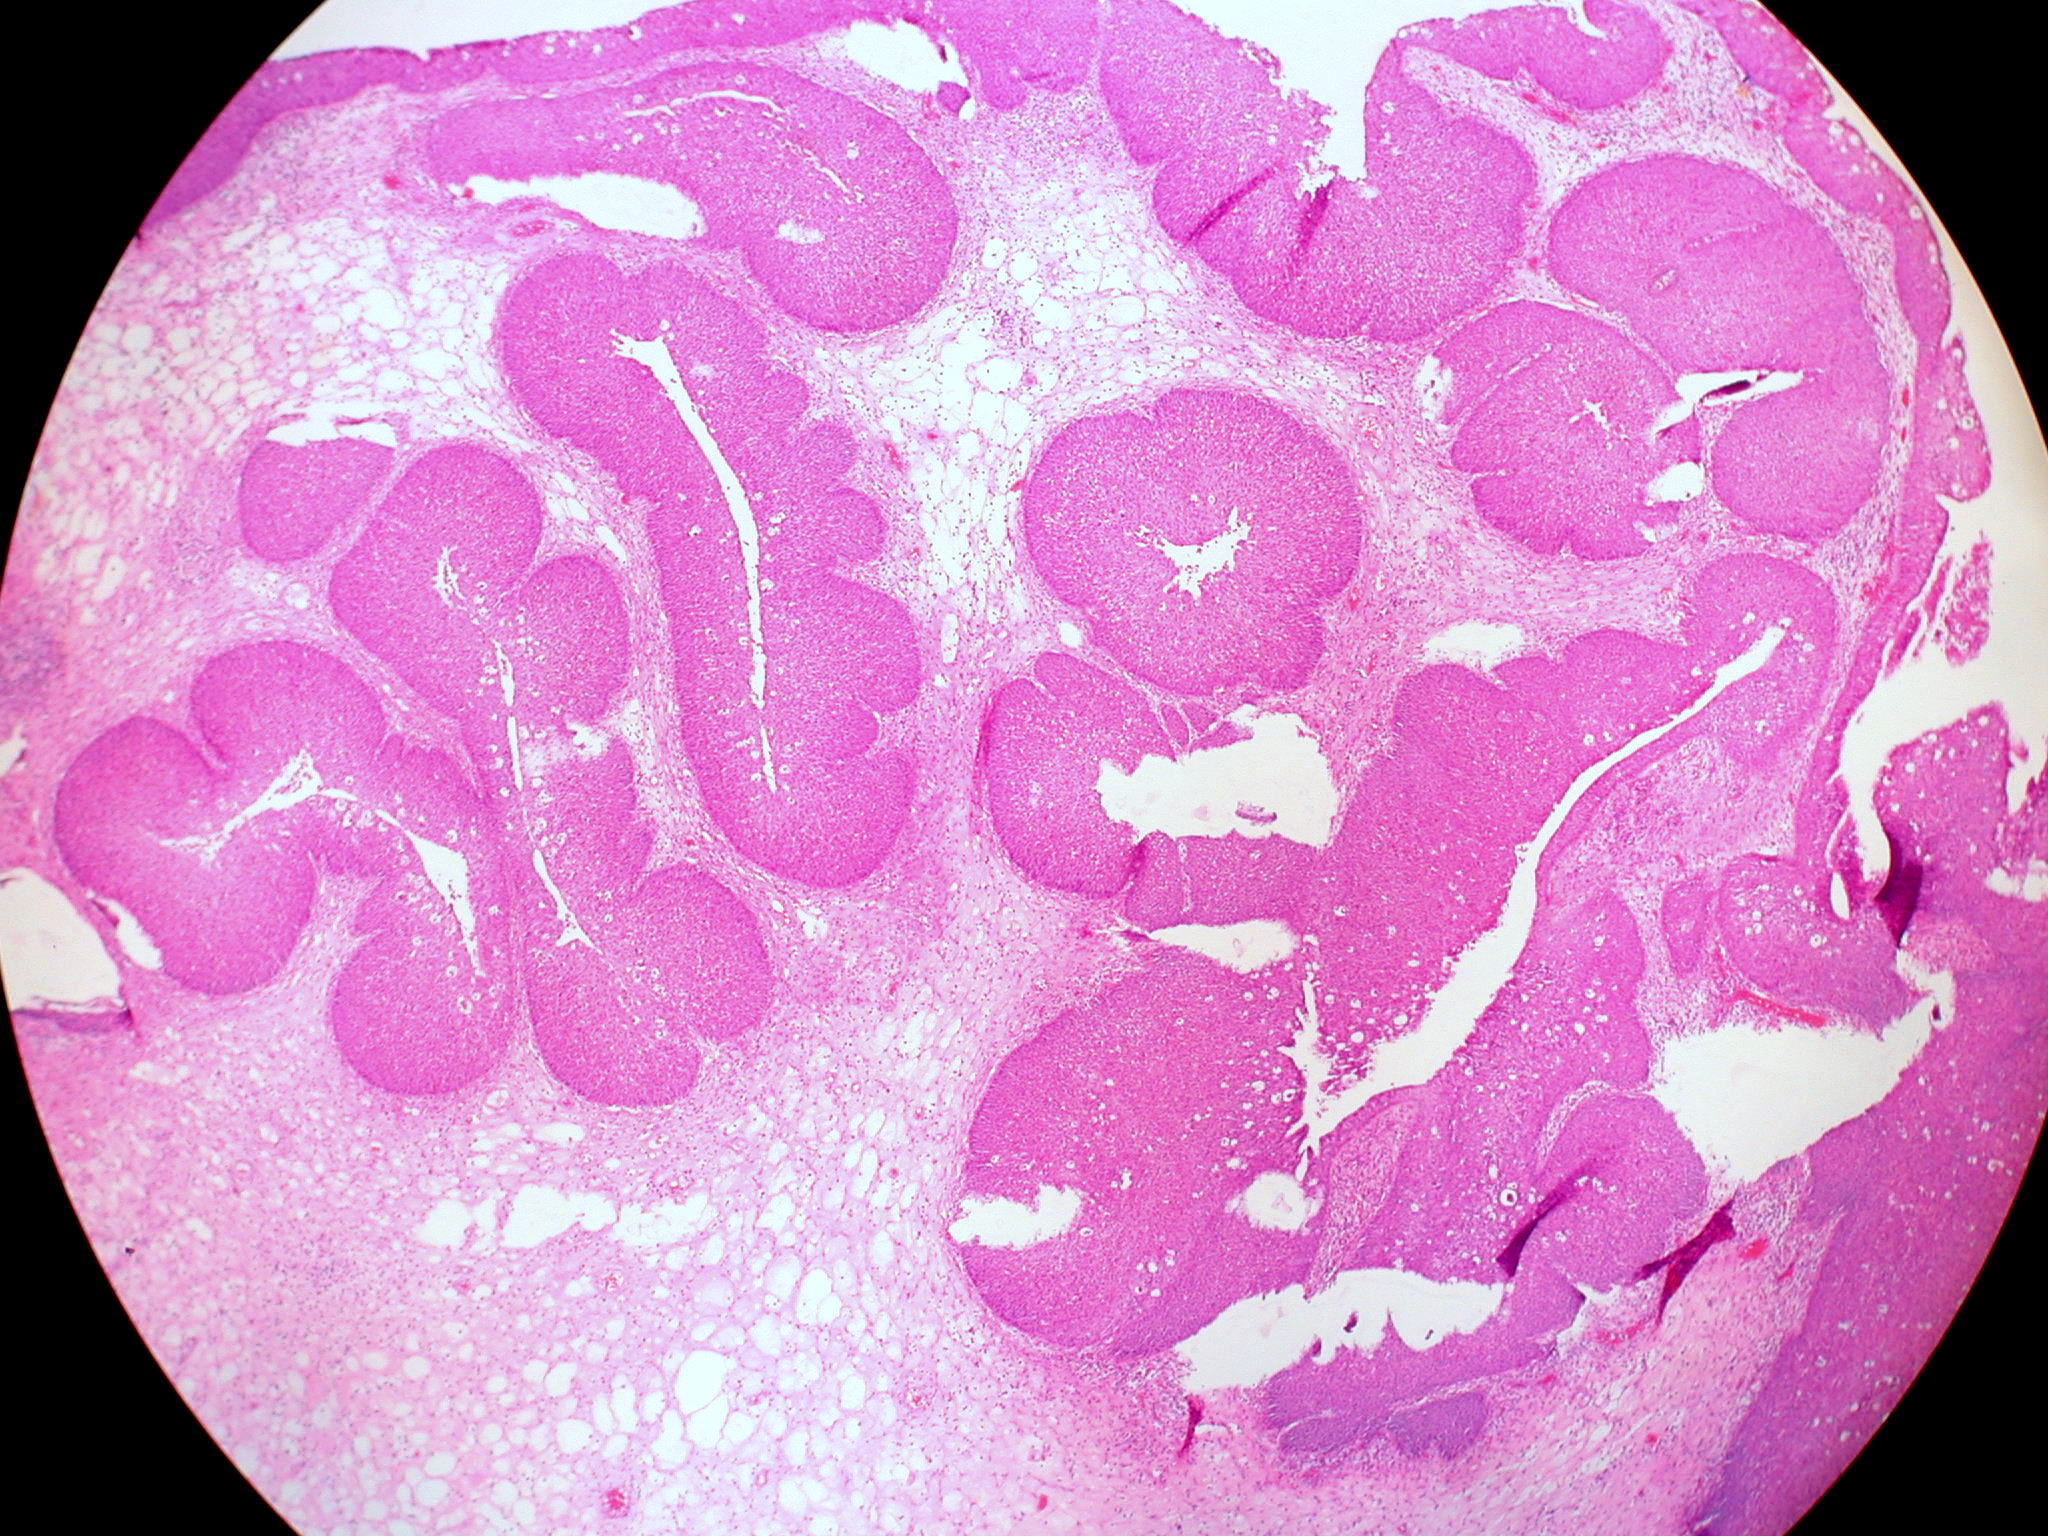 Sinonasal papilloma inverted type - Inverted papilloma nasal pathology